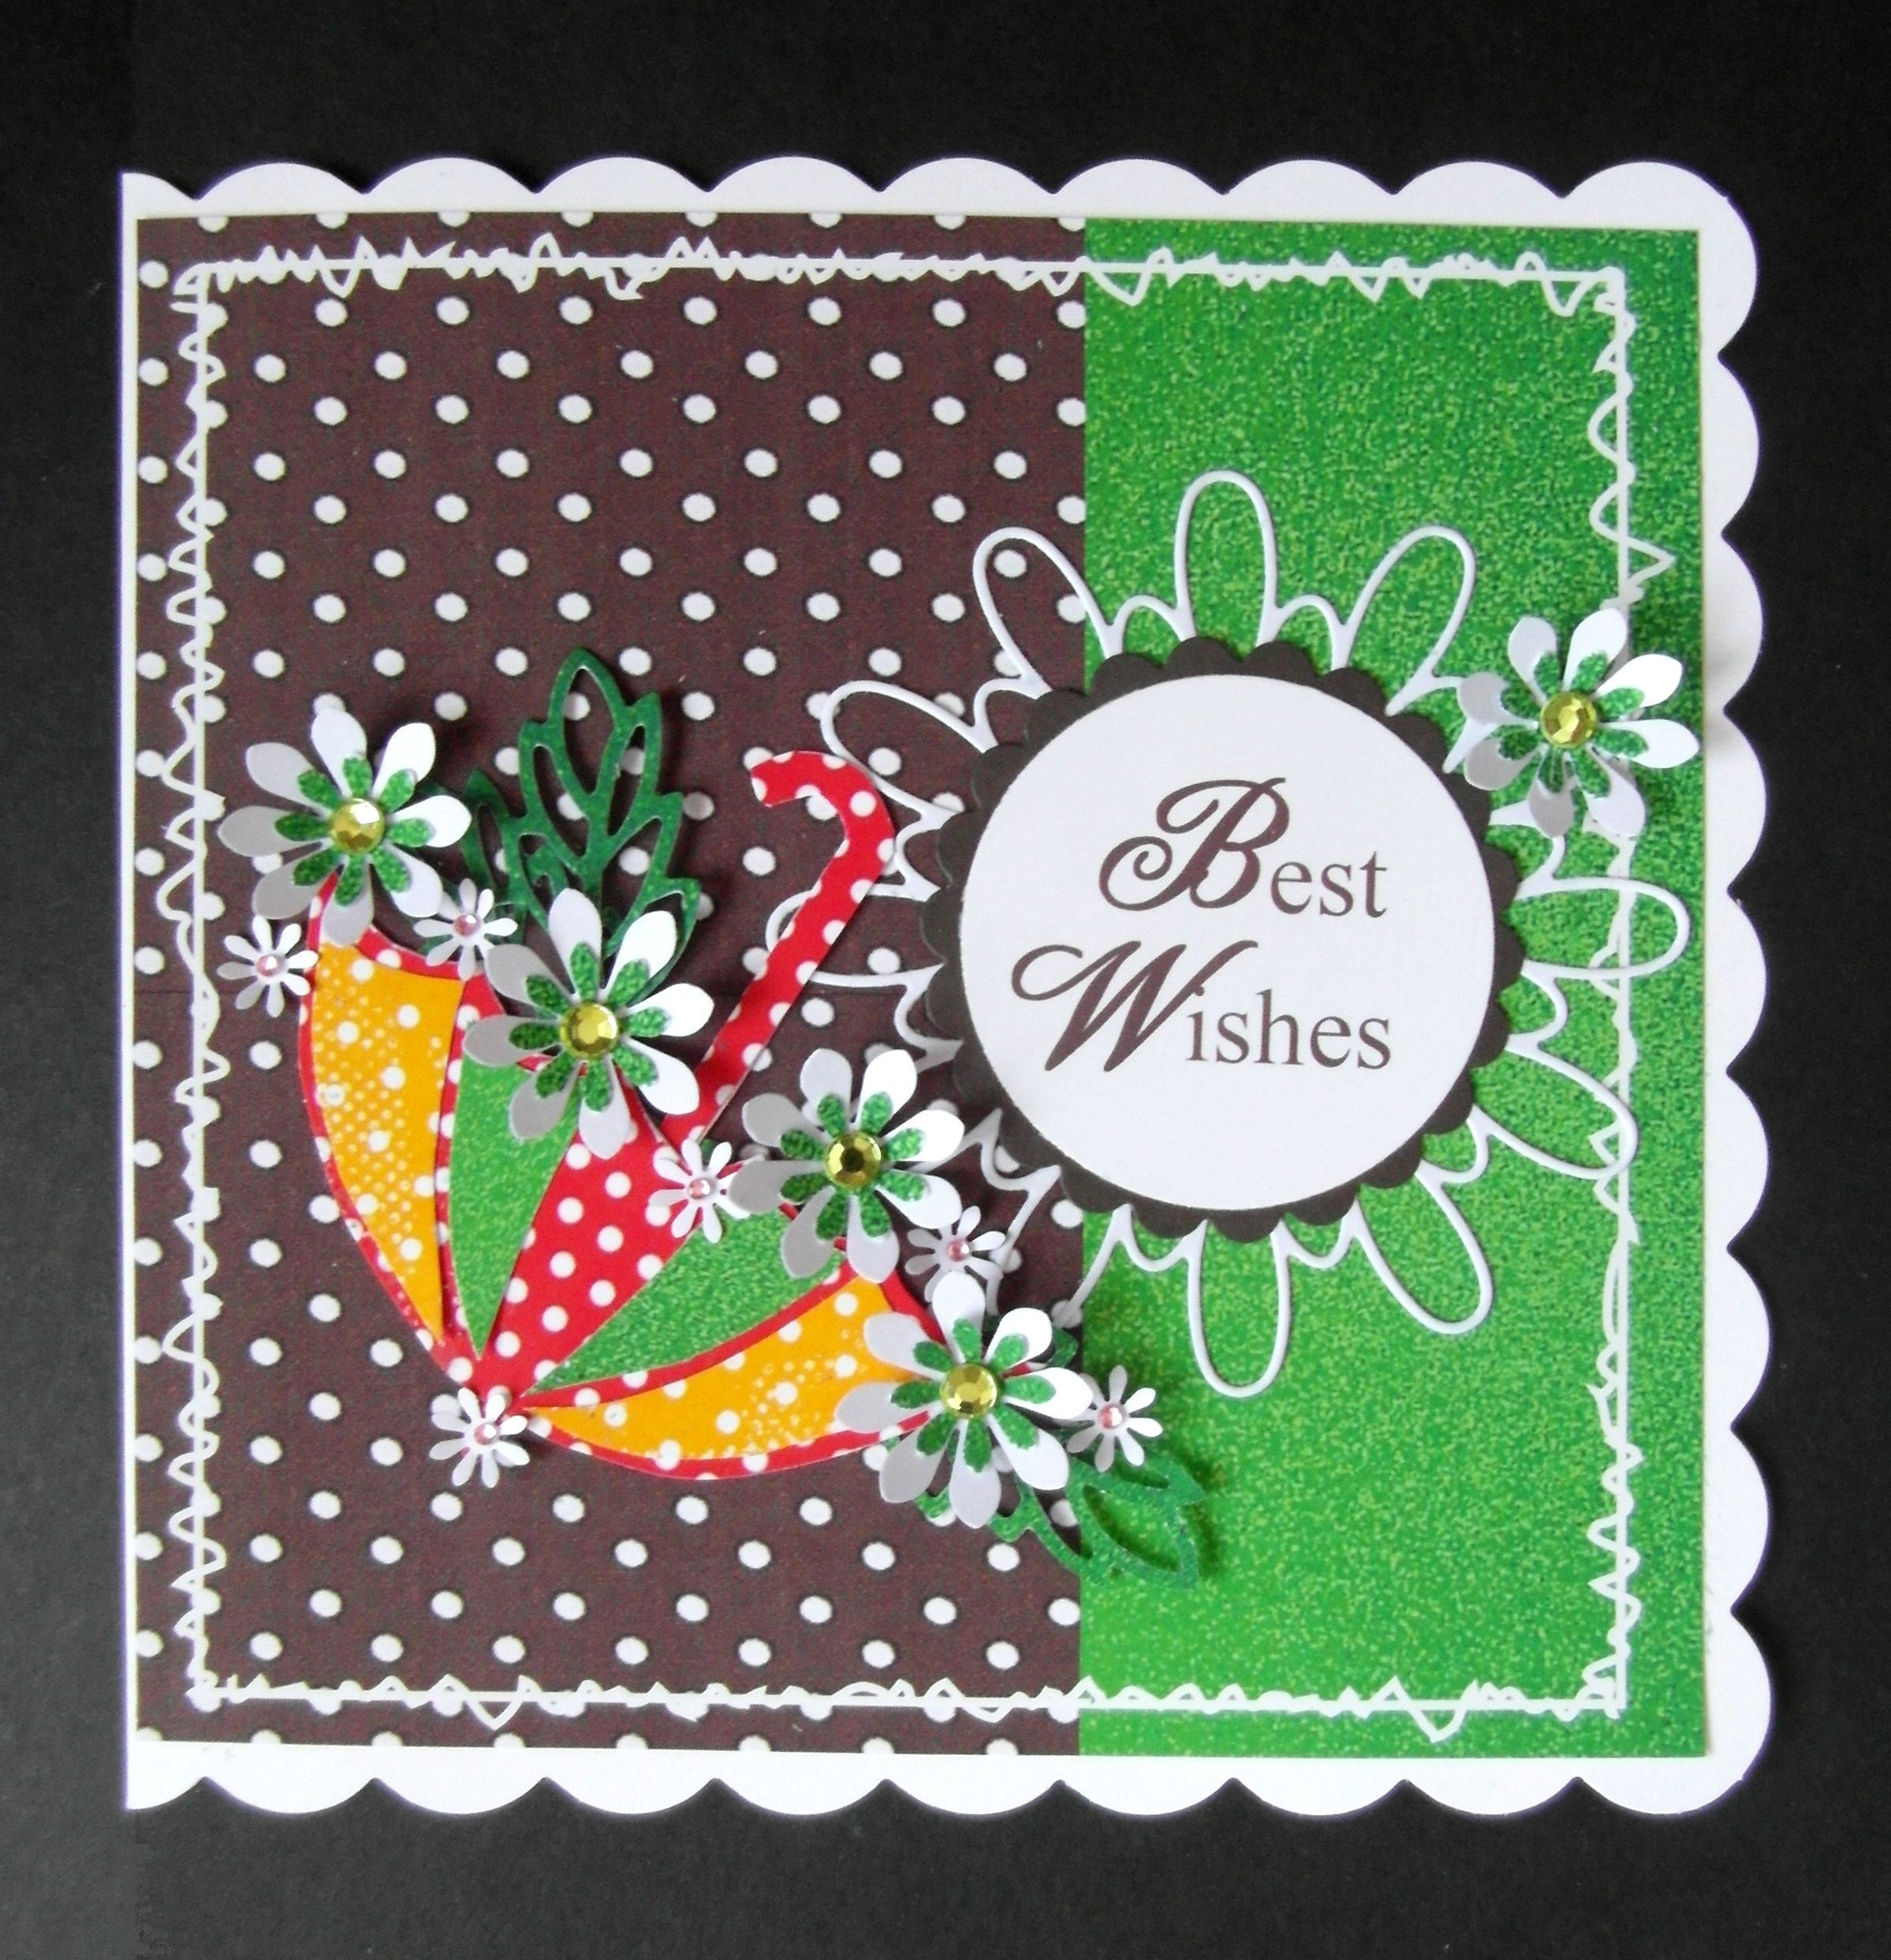 Card made using Daisy punch for flowers; Tilda and circle Dies - Umbrella hand cut from template - Original idea by agnieszka.